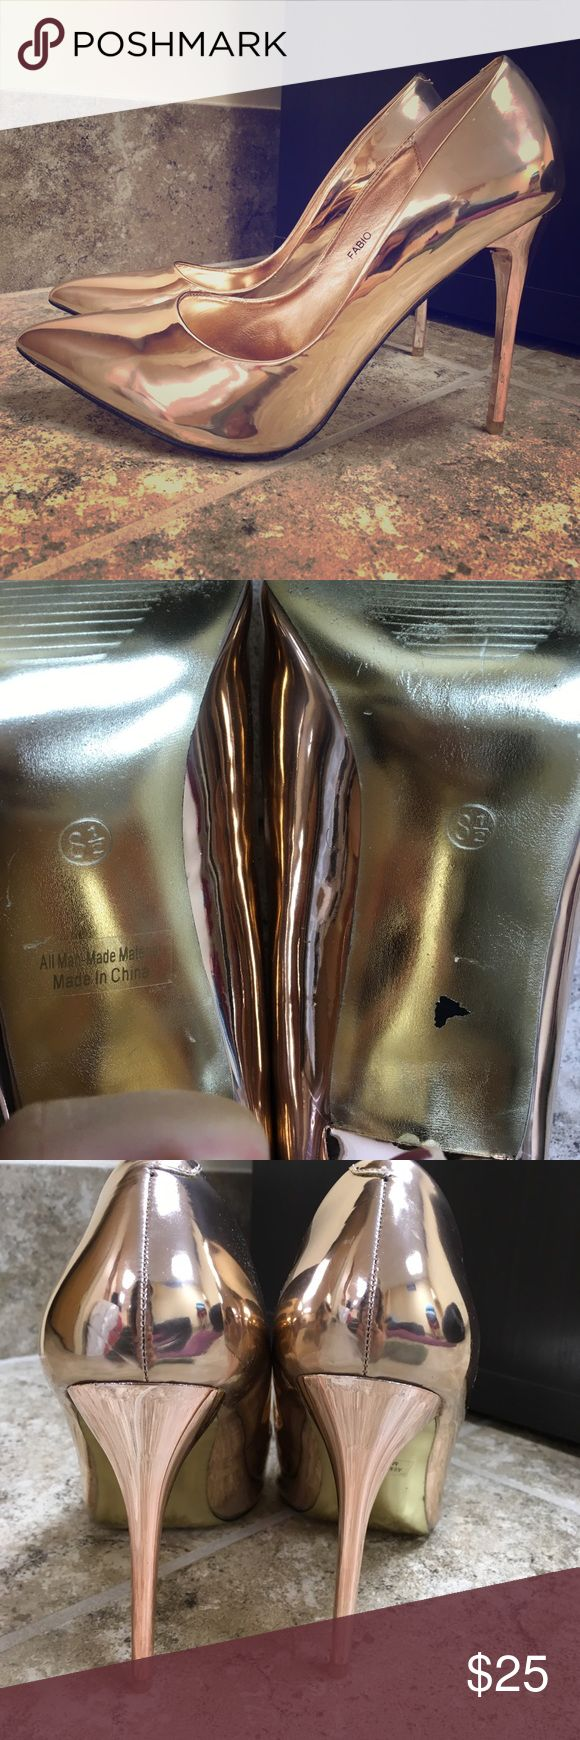 Rose Gold pumps BEAUTIFUL rose gold pumps with a pointed toe! About 4-4.5 inch heel, & size 8.5. I bought them at my local AKIRA, & only wore them once! PRICE IS NEGOTIABLE :) Bella Luna Shoes Heels